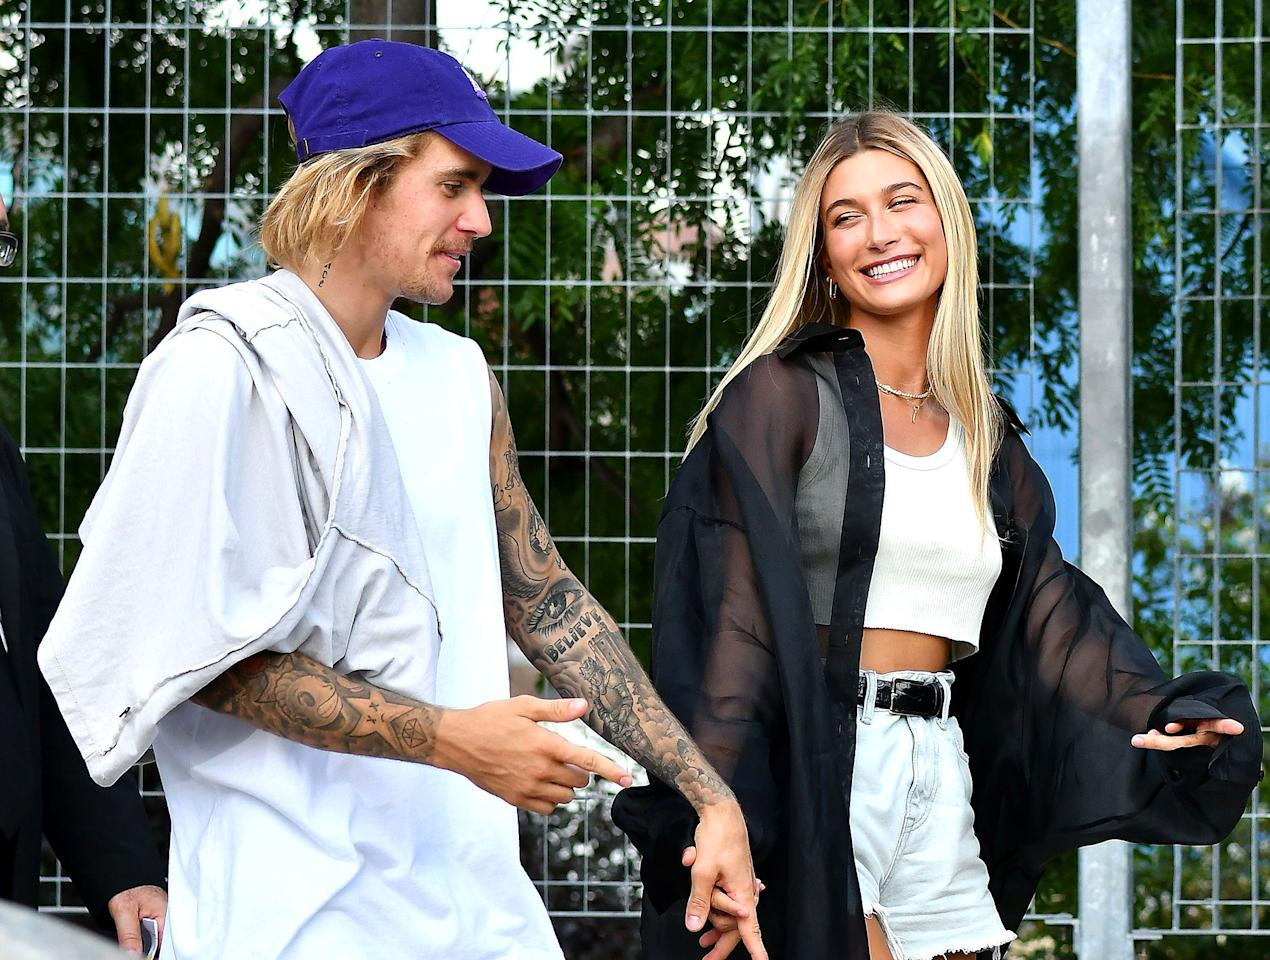 """Days before the couple <a href=""""https://people.com/music/justin-bieber-jokes-wife-hailey-baldwin-belieber/"""">would secretly marry</a>, they were spotted at New York Fashion Week in September 2018."""